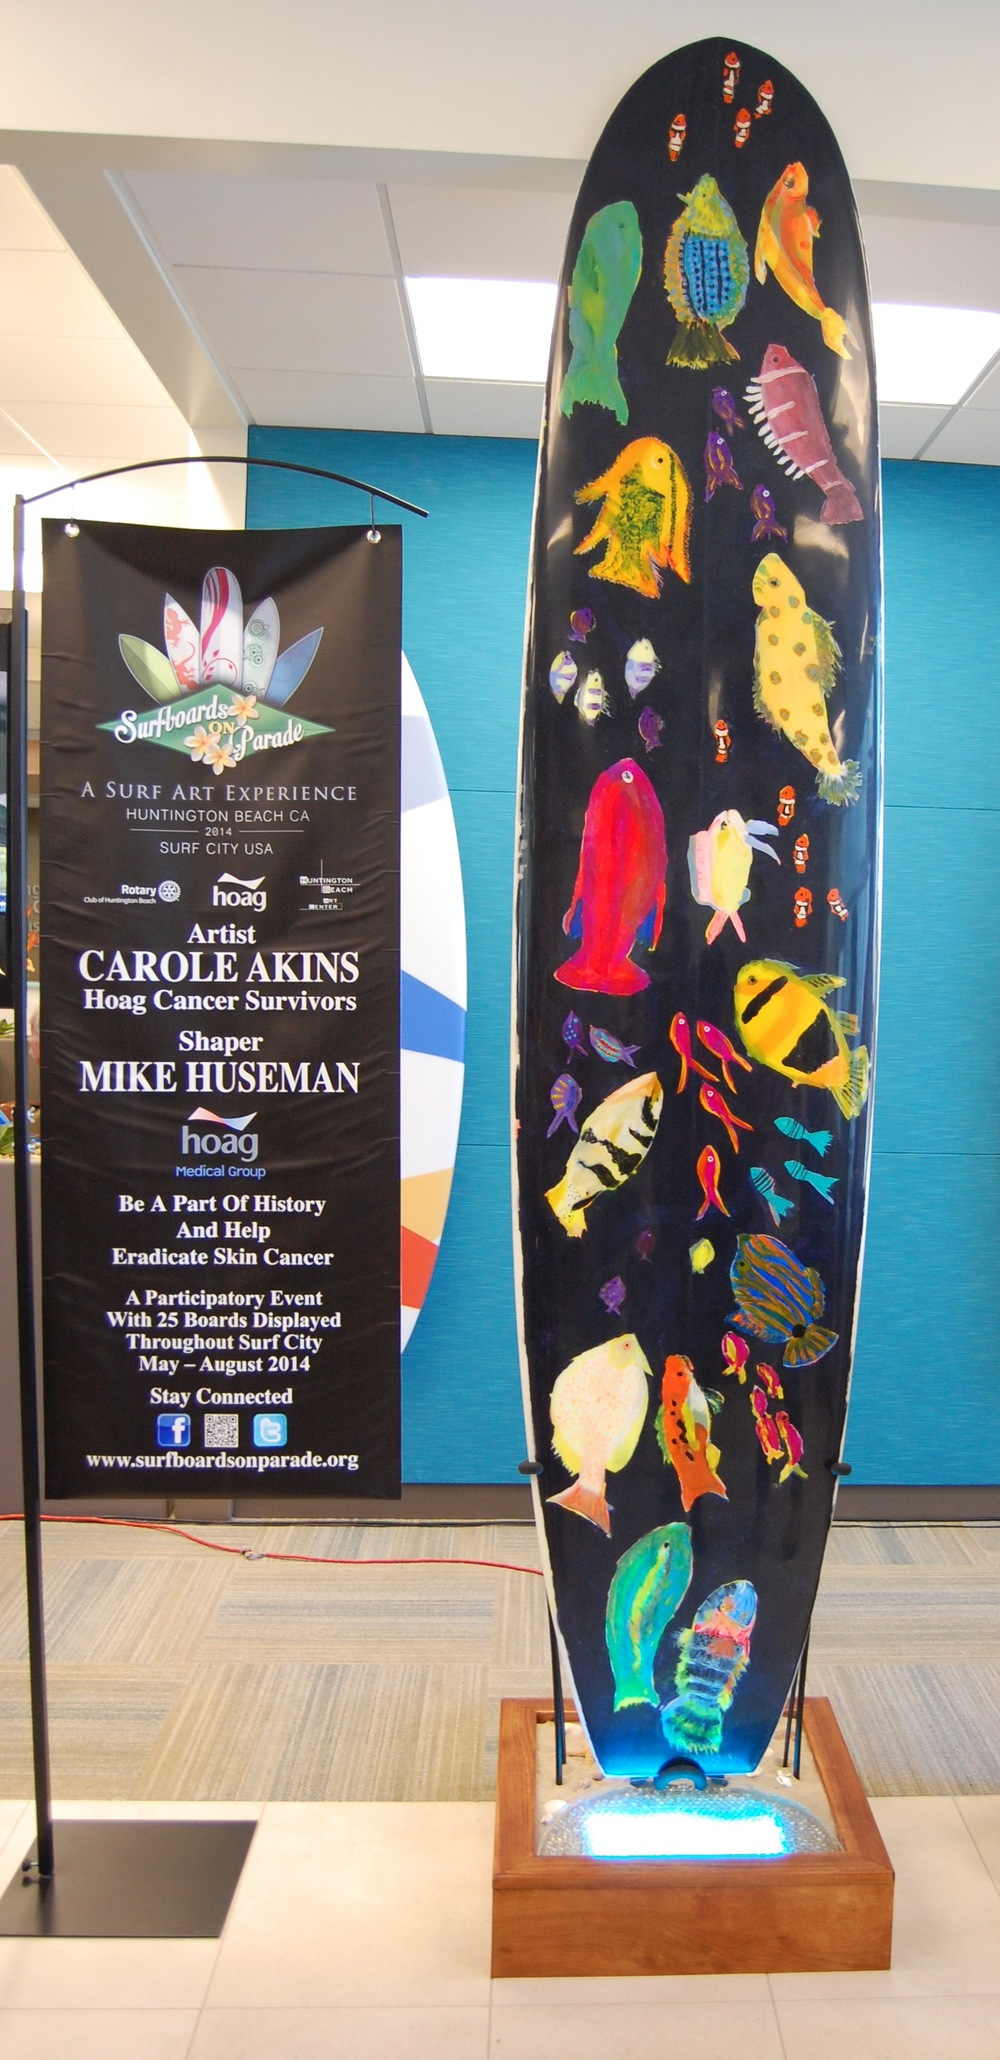 """Surfboards on Parade"" collaboration board featuring shaper Mike Huseman and artist Carole Akins (Photo by Lauren Lloyd)"